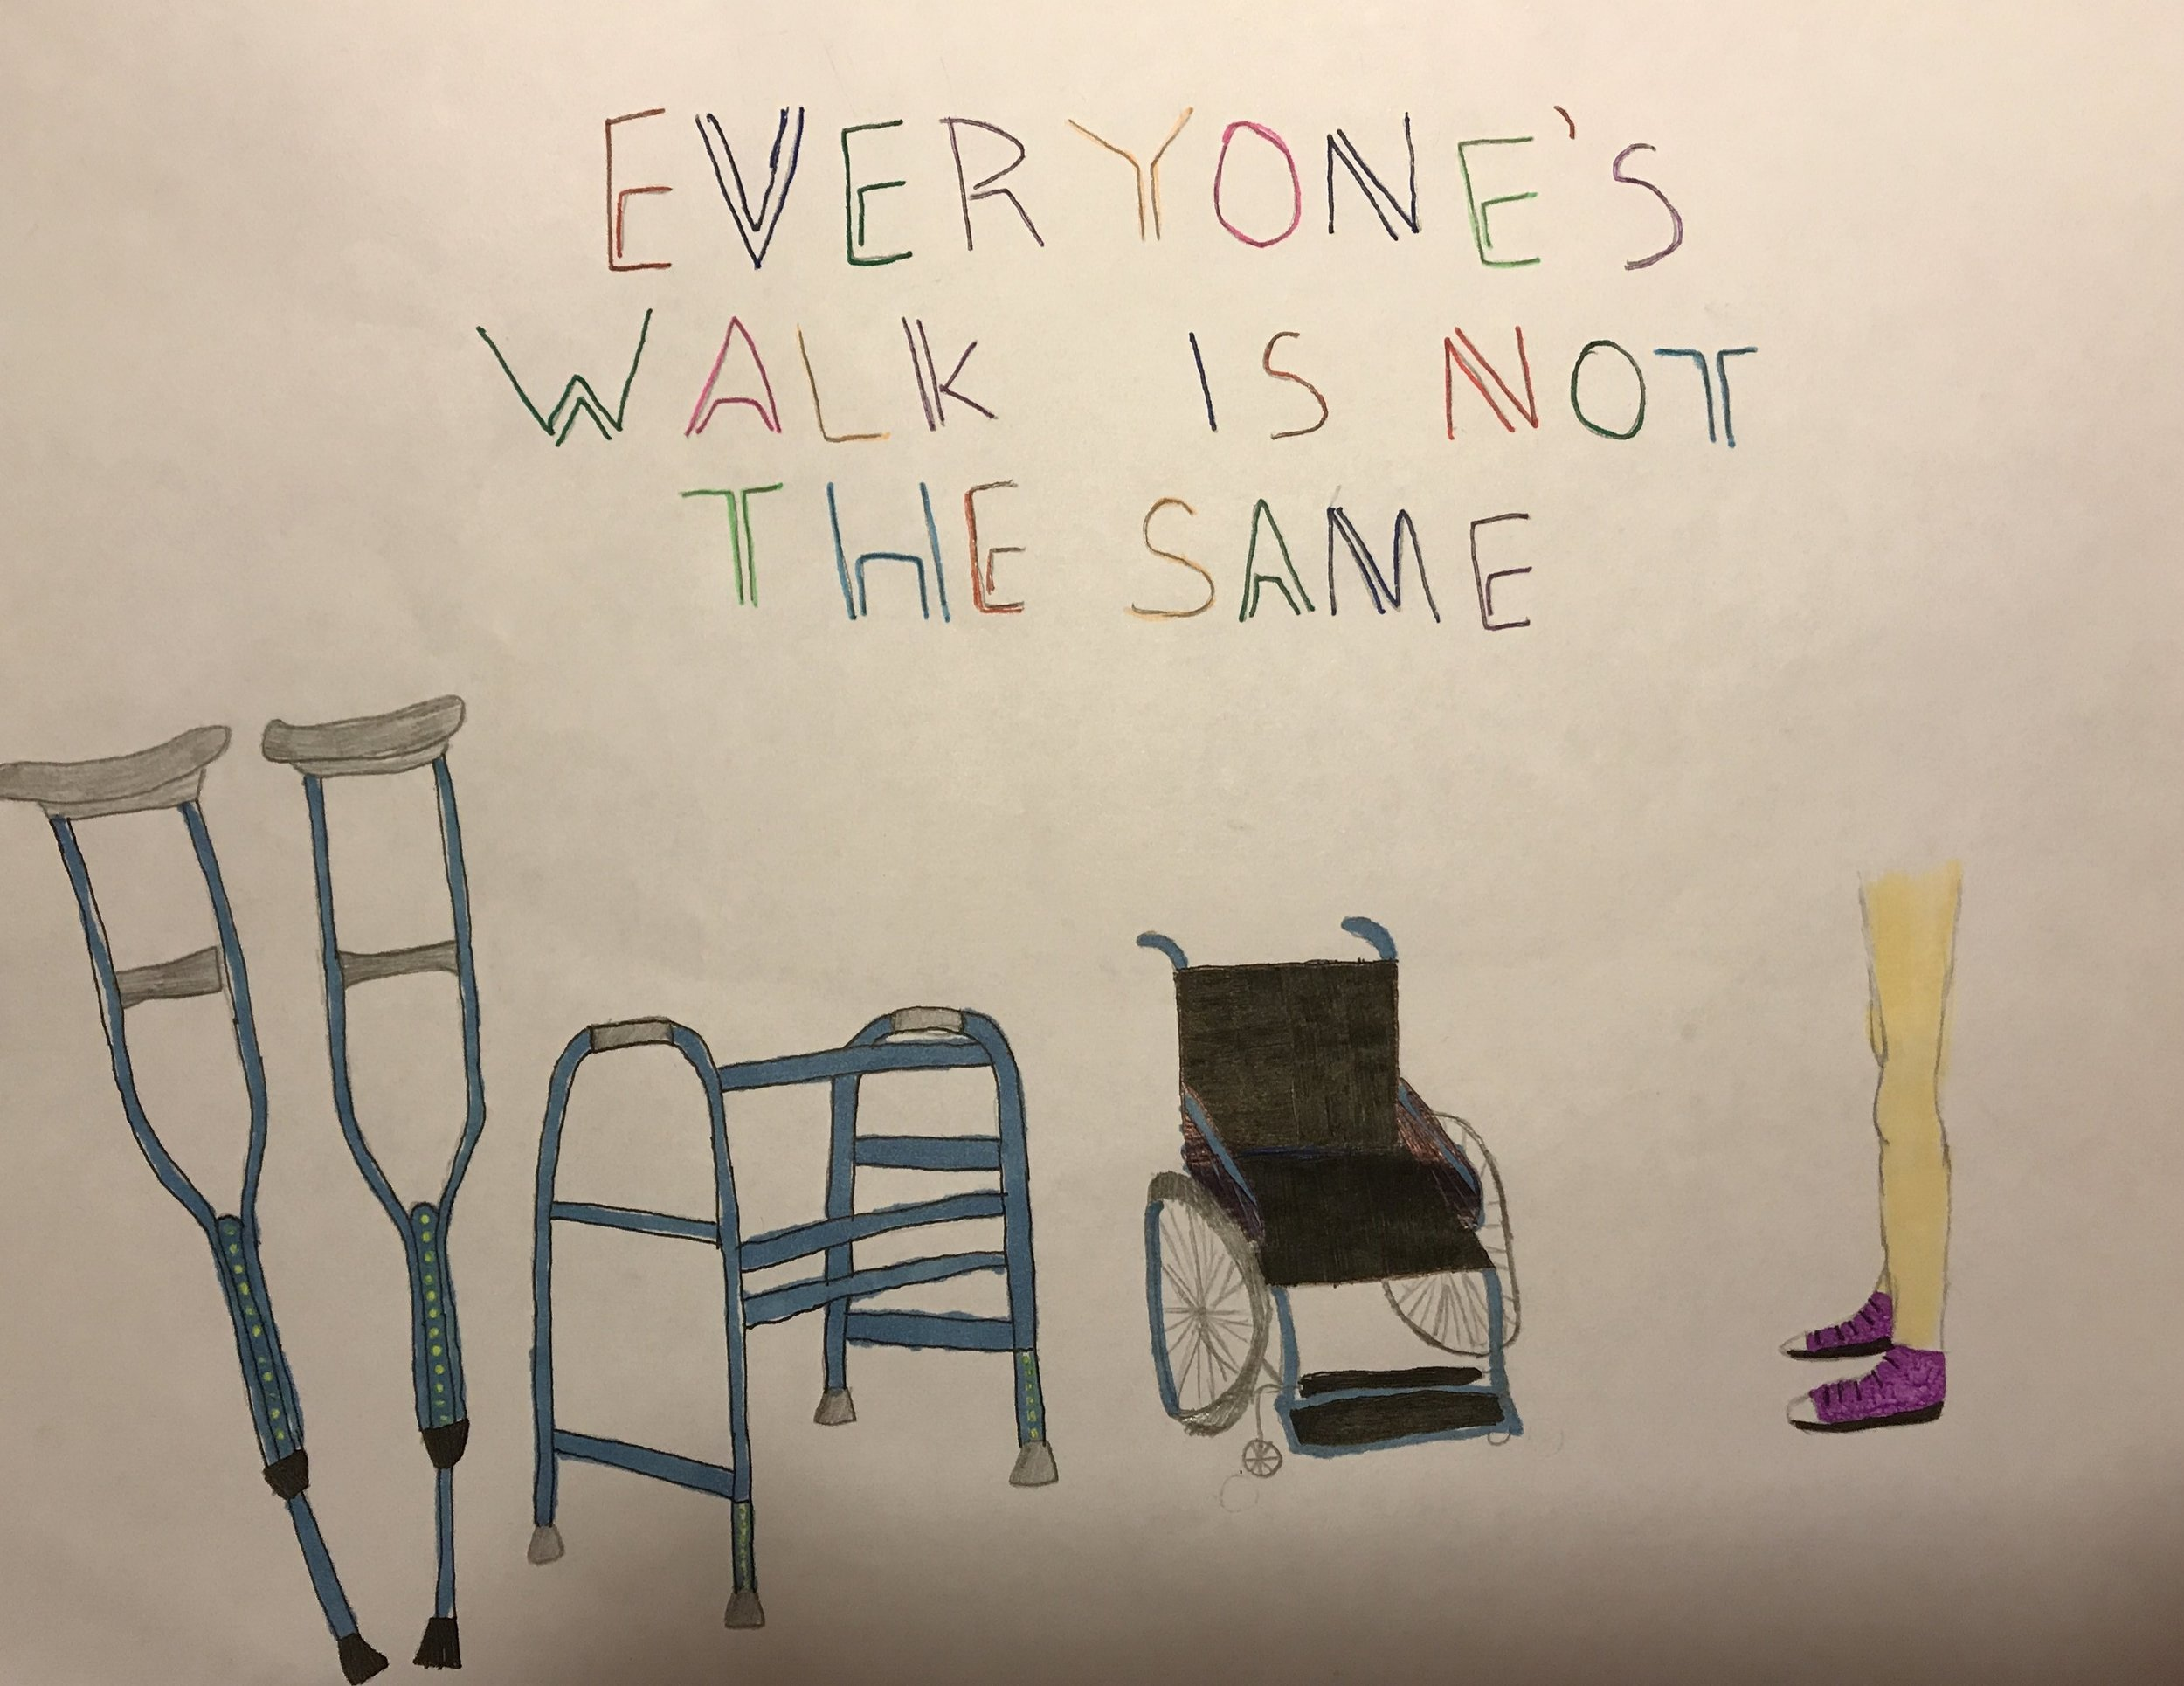 022 - EVERYONE'S WALK IS NOT THE SAME by Ainsley Beaver (age 13) in Knoxville, Tennessee, USA